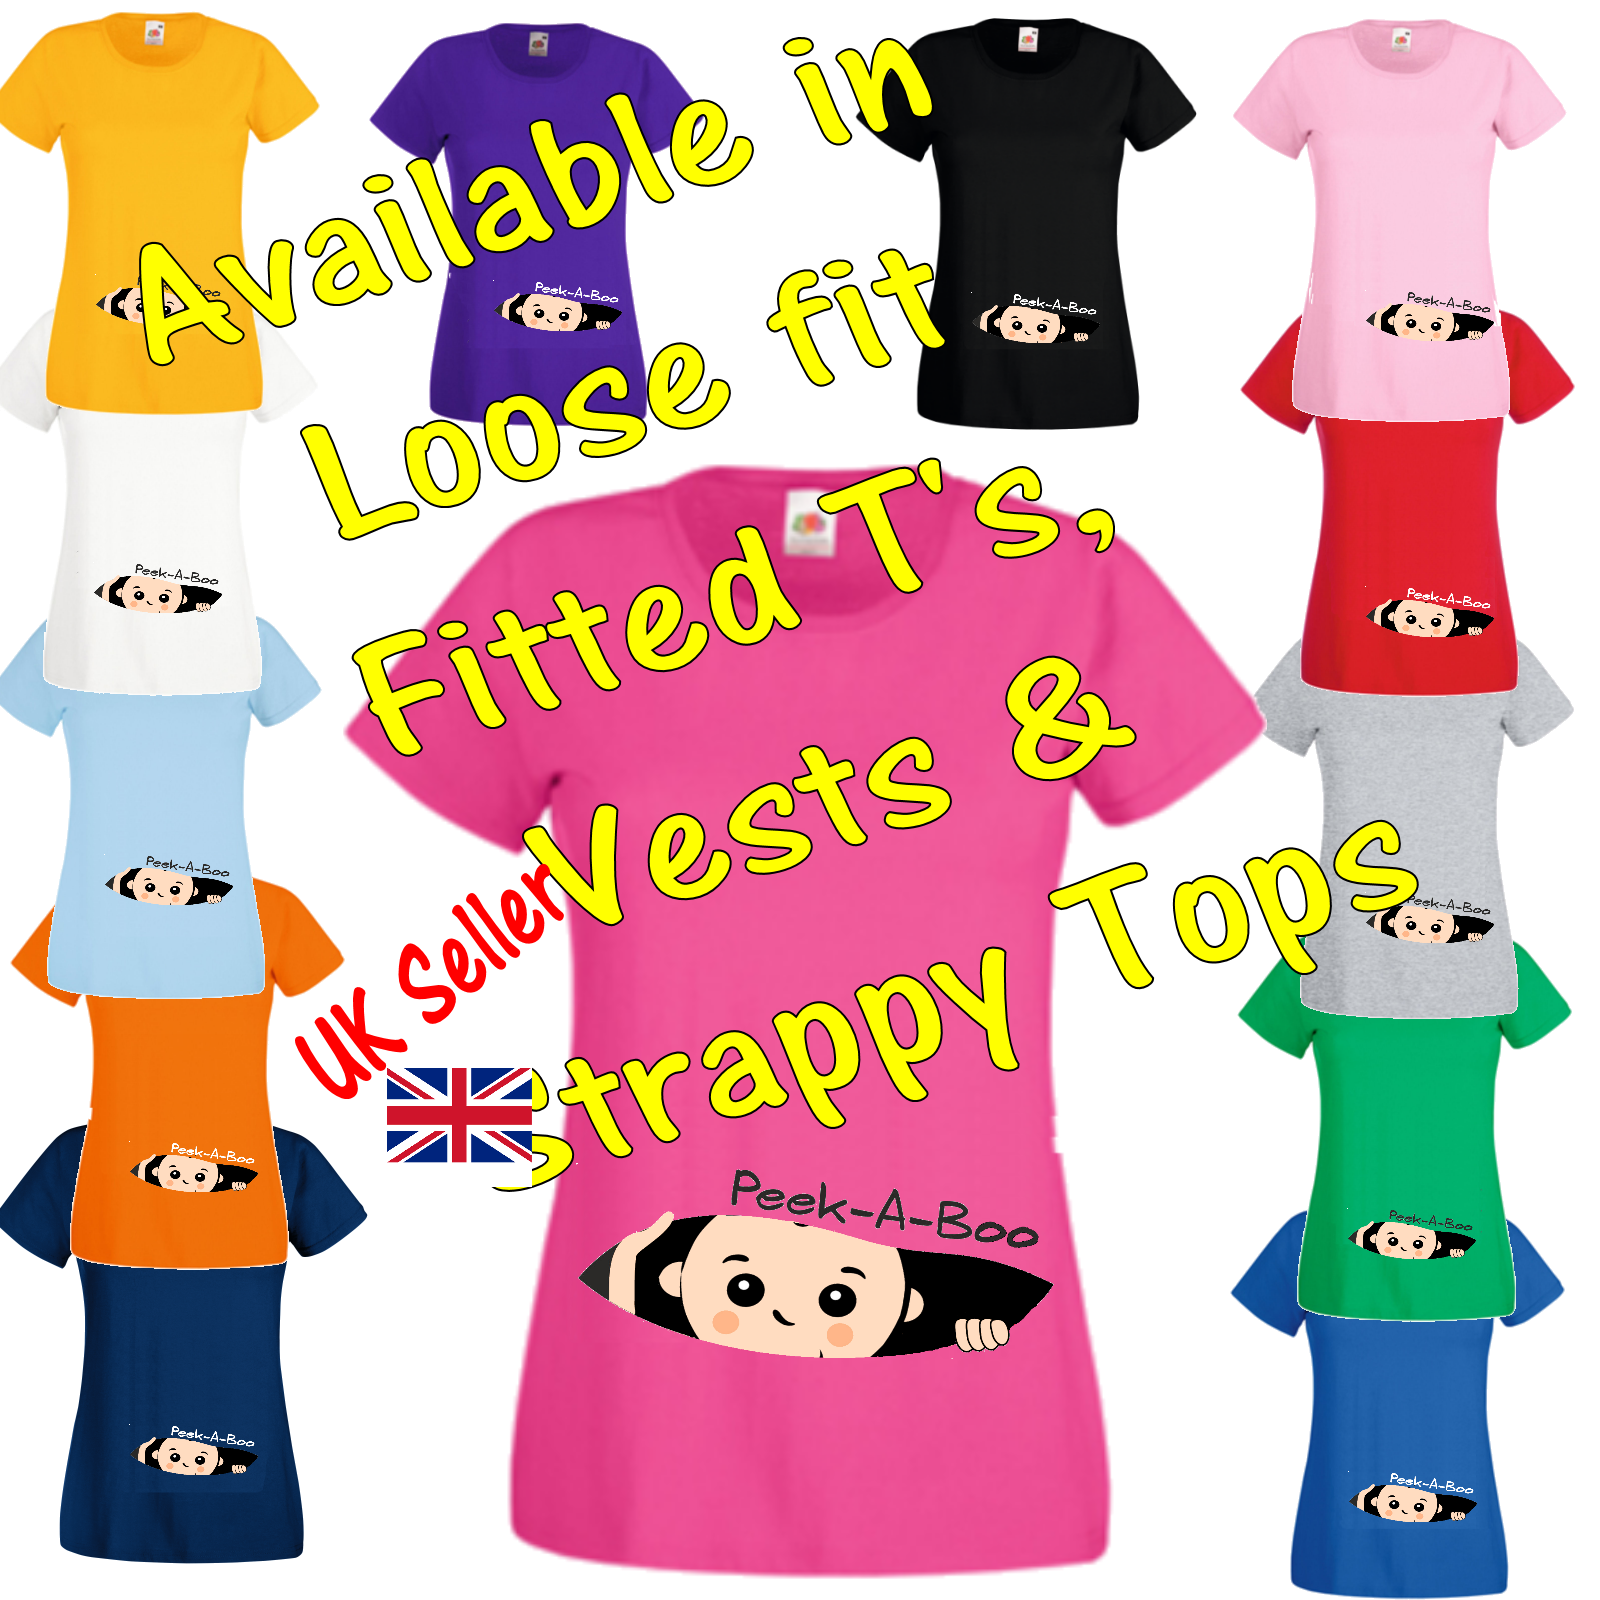 492841aaf3fe0 Details about Peek a Boo T Shirt Vest Strappy Top funny comic pregnancy  maternity